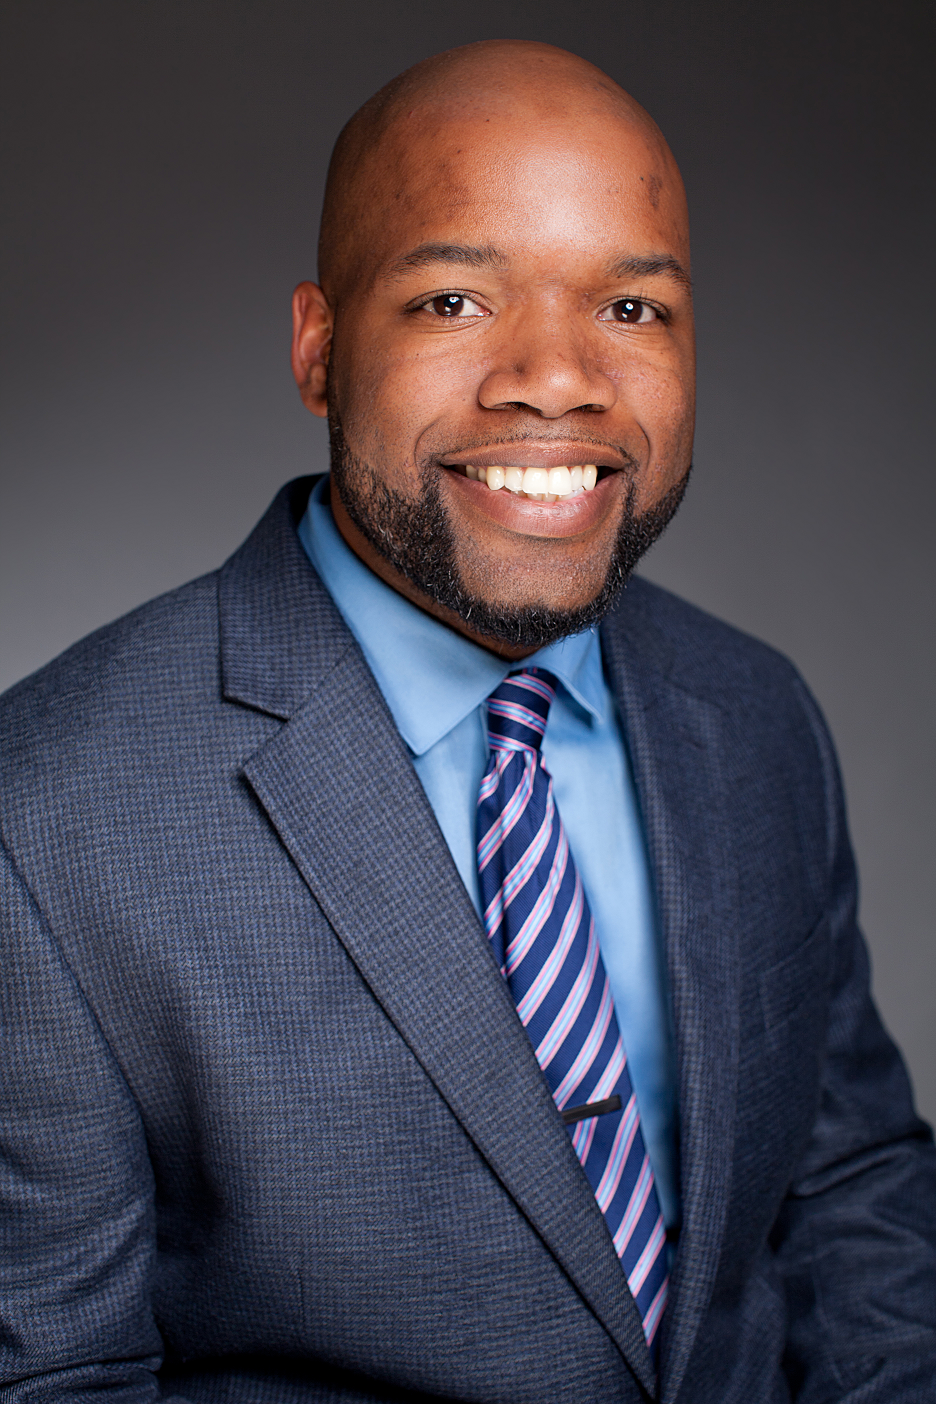 PRESS RELEASE | Louisville education advocate named to Prichard Committee